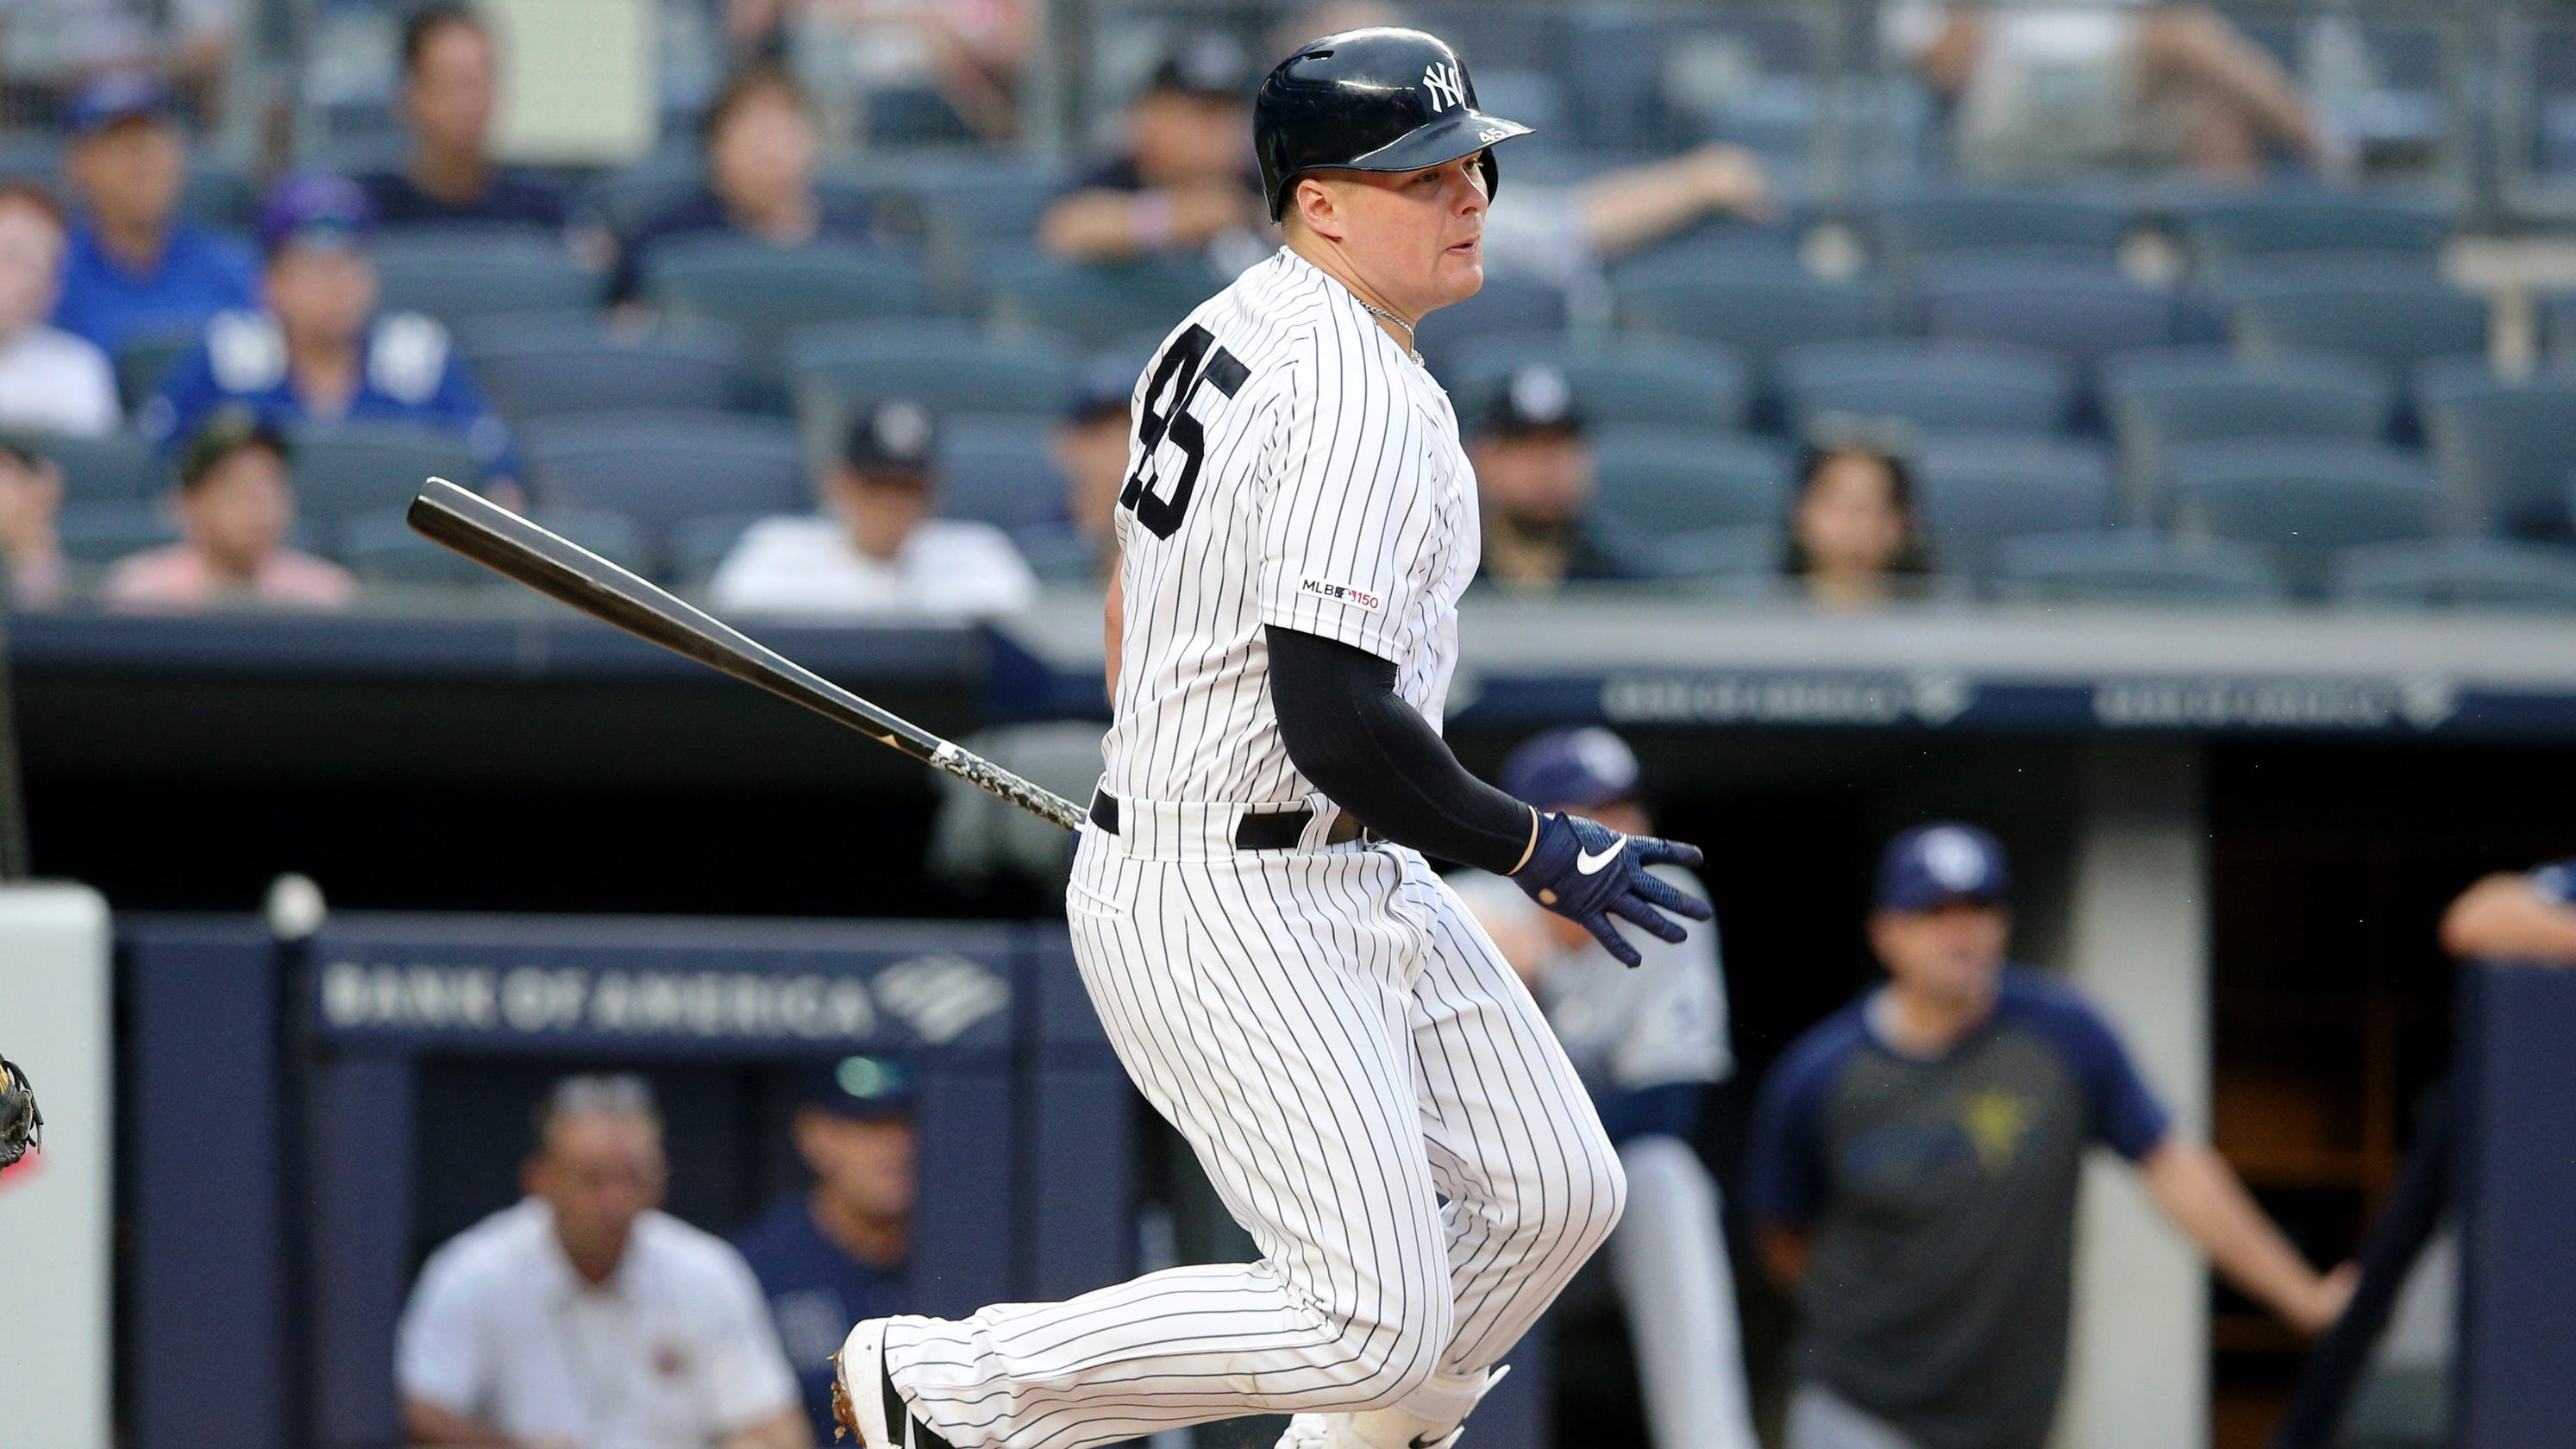 best service 68de2 da7e6 Why New York Yankees dropped Luke Voit in lineup against Rays